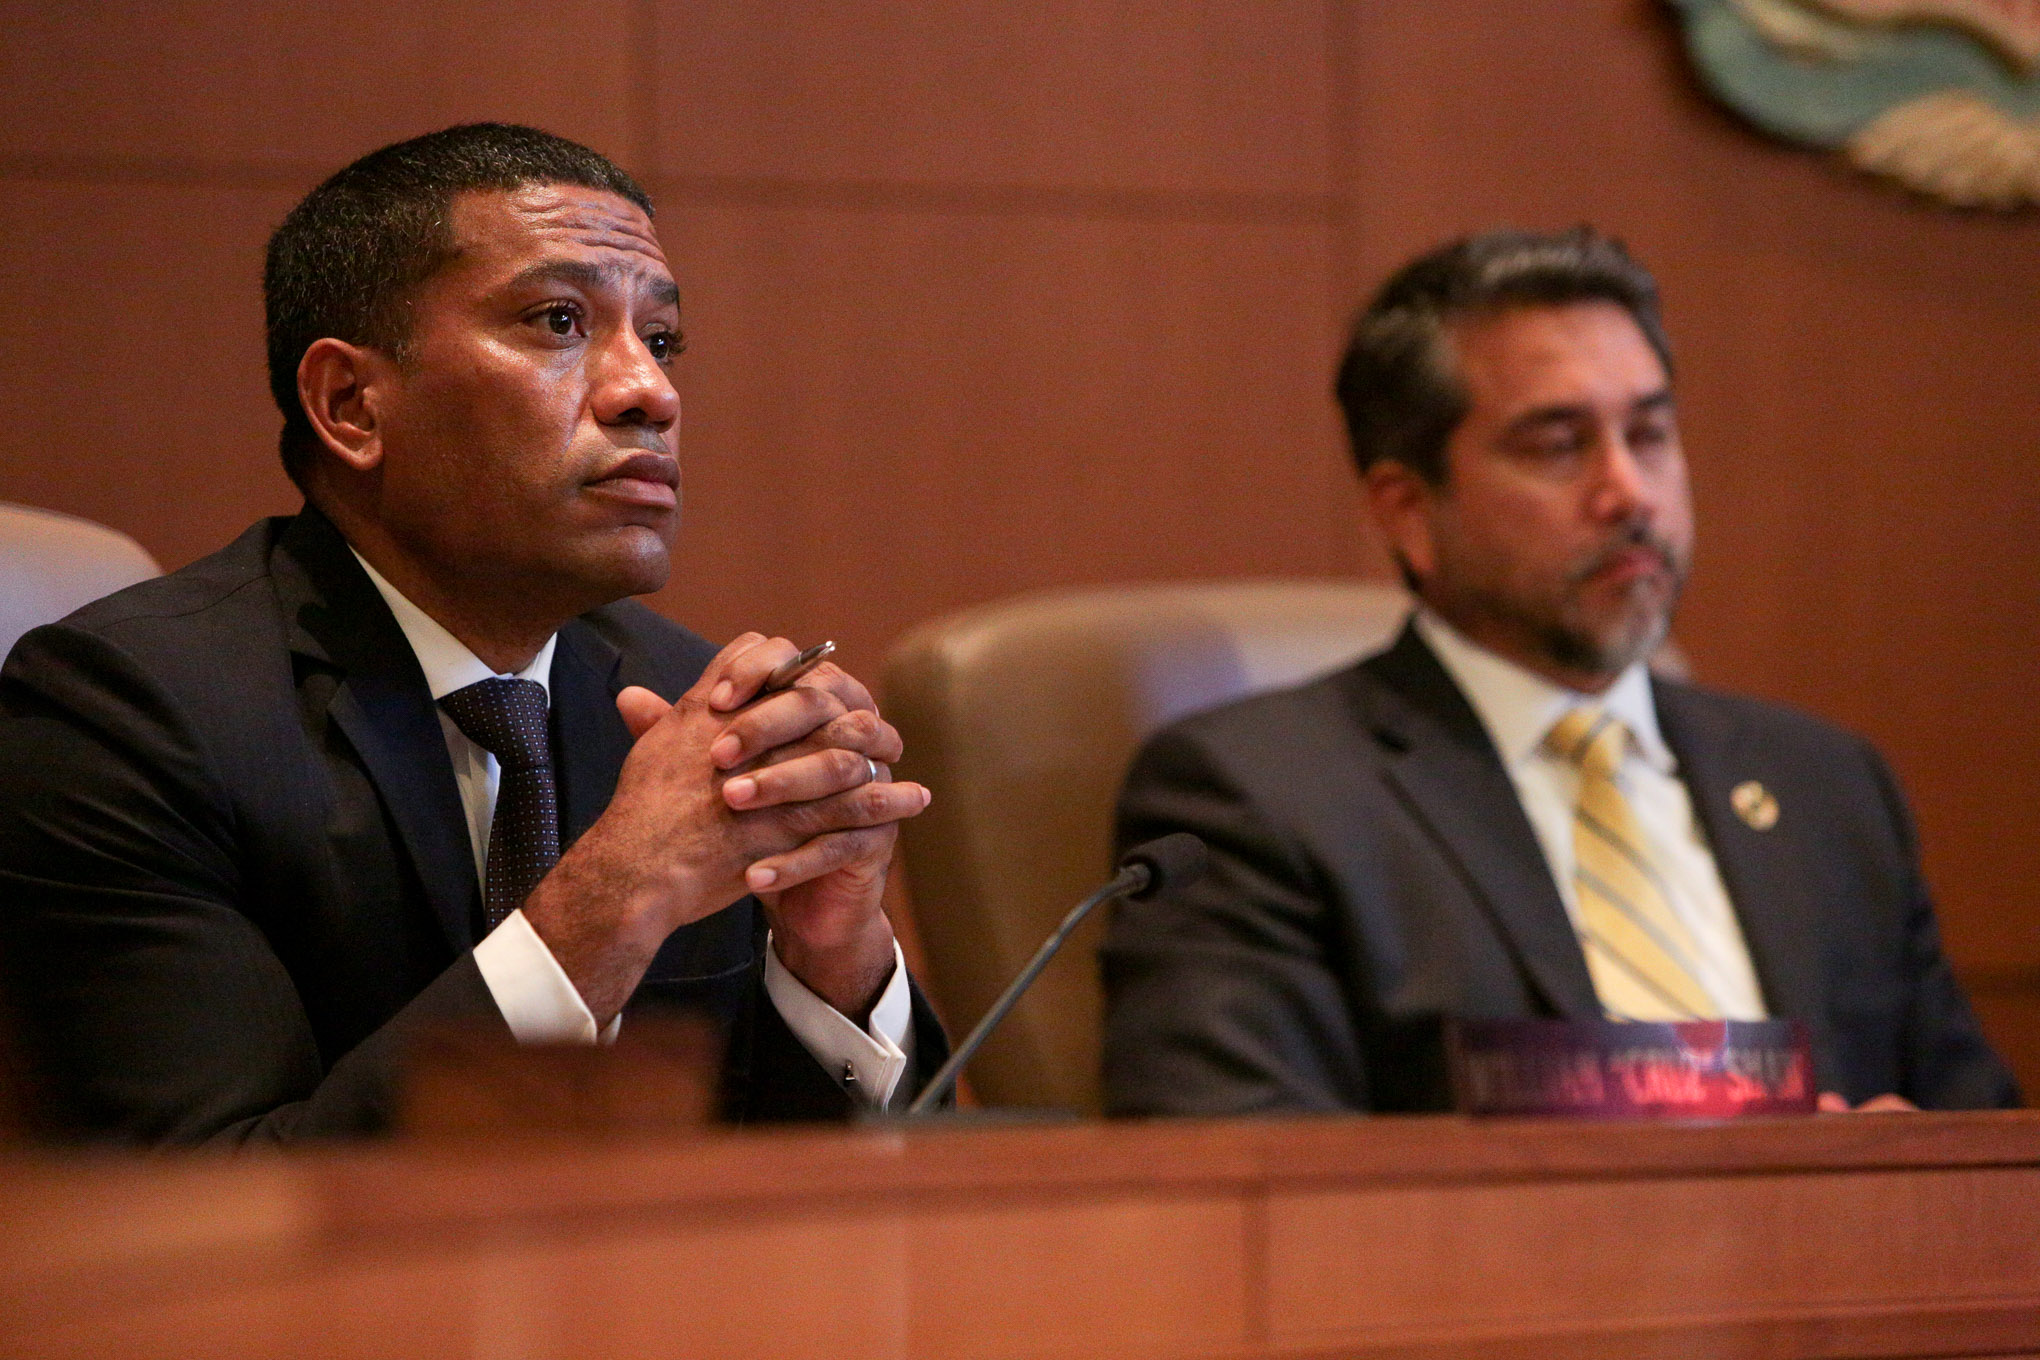 Councilman William 'Cruz' Shaw (D2) and Councilman Roberto Treviño (D1) consider a citizen's comments in opposition to the removal of a Confederate statue in Travis Park.